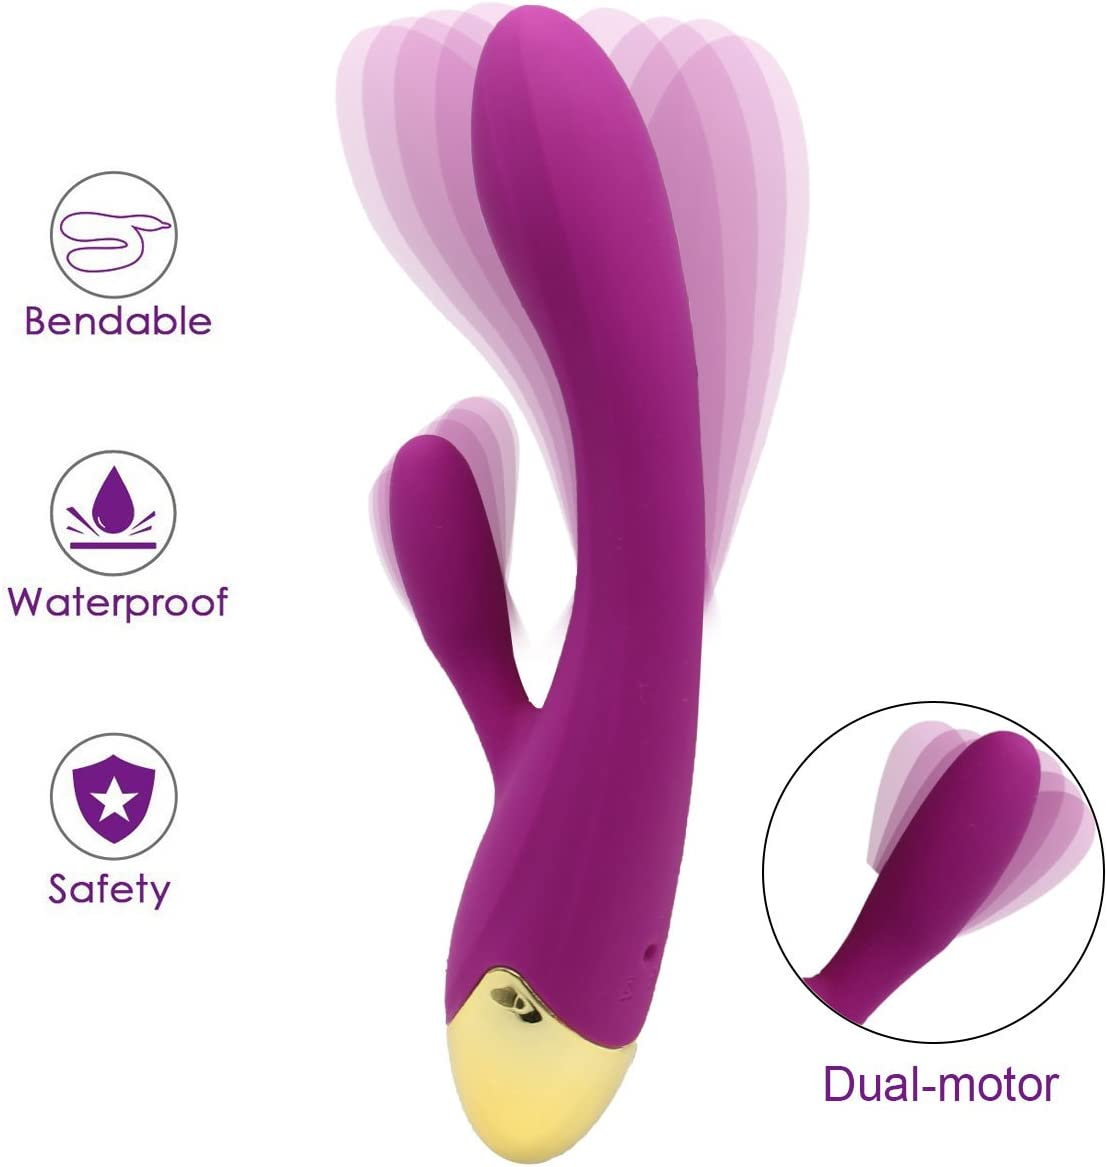 Computer Portable LED Massager Strongest Waterproof Cordless Handheld – Perfect Relief on Neck, Back, Foot, Hand Pains Sports Injury Dark Purple